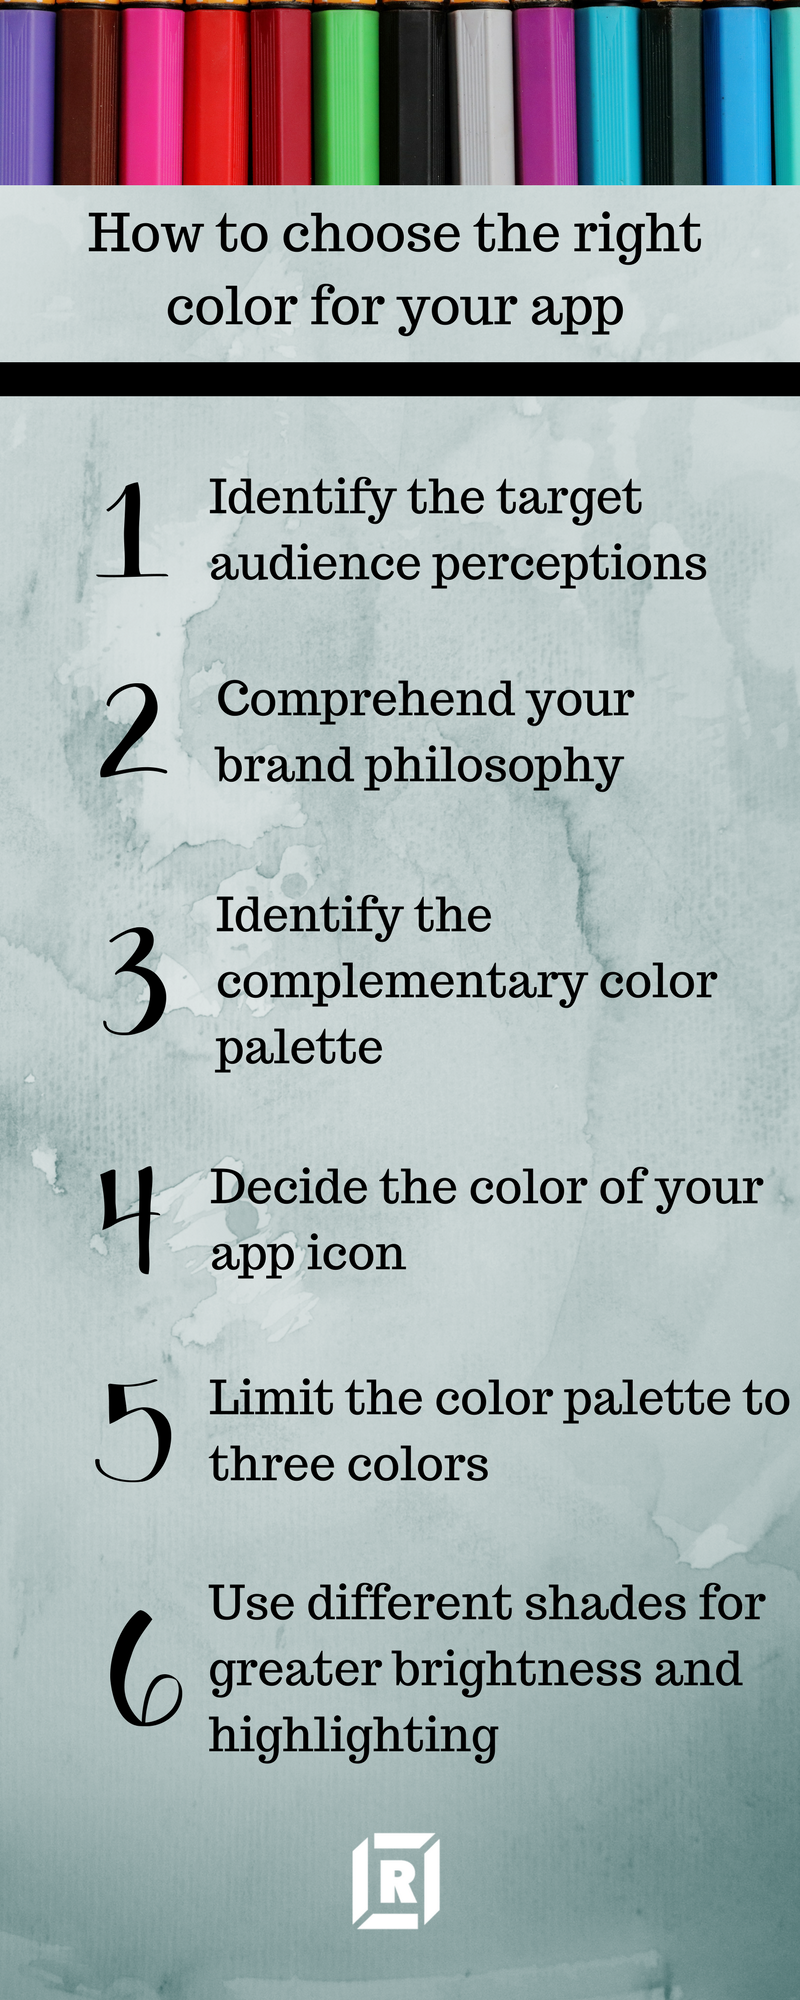 How to choose the right color for your app